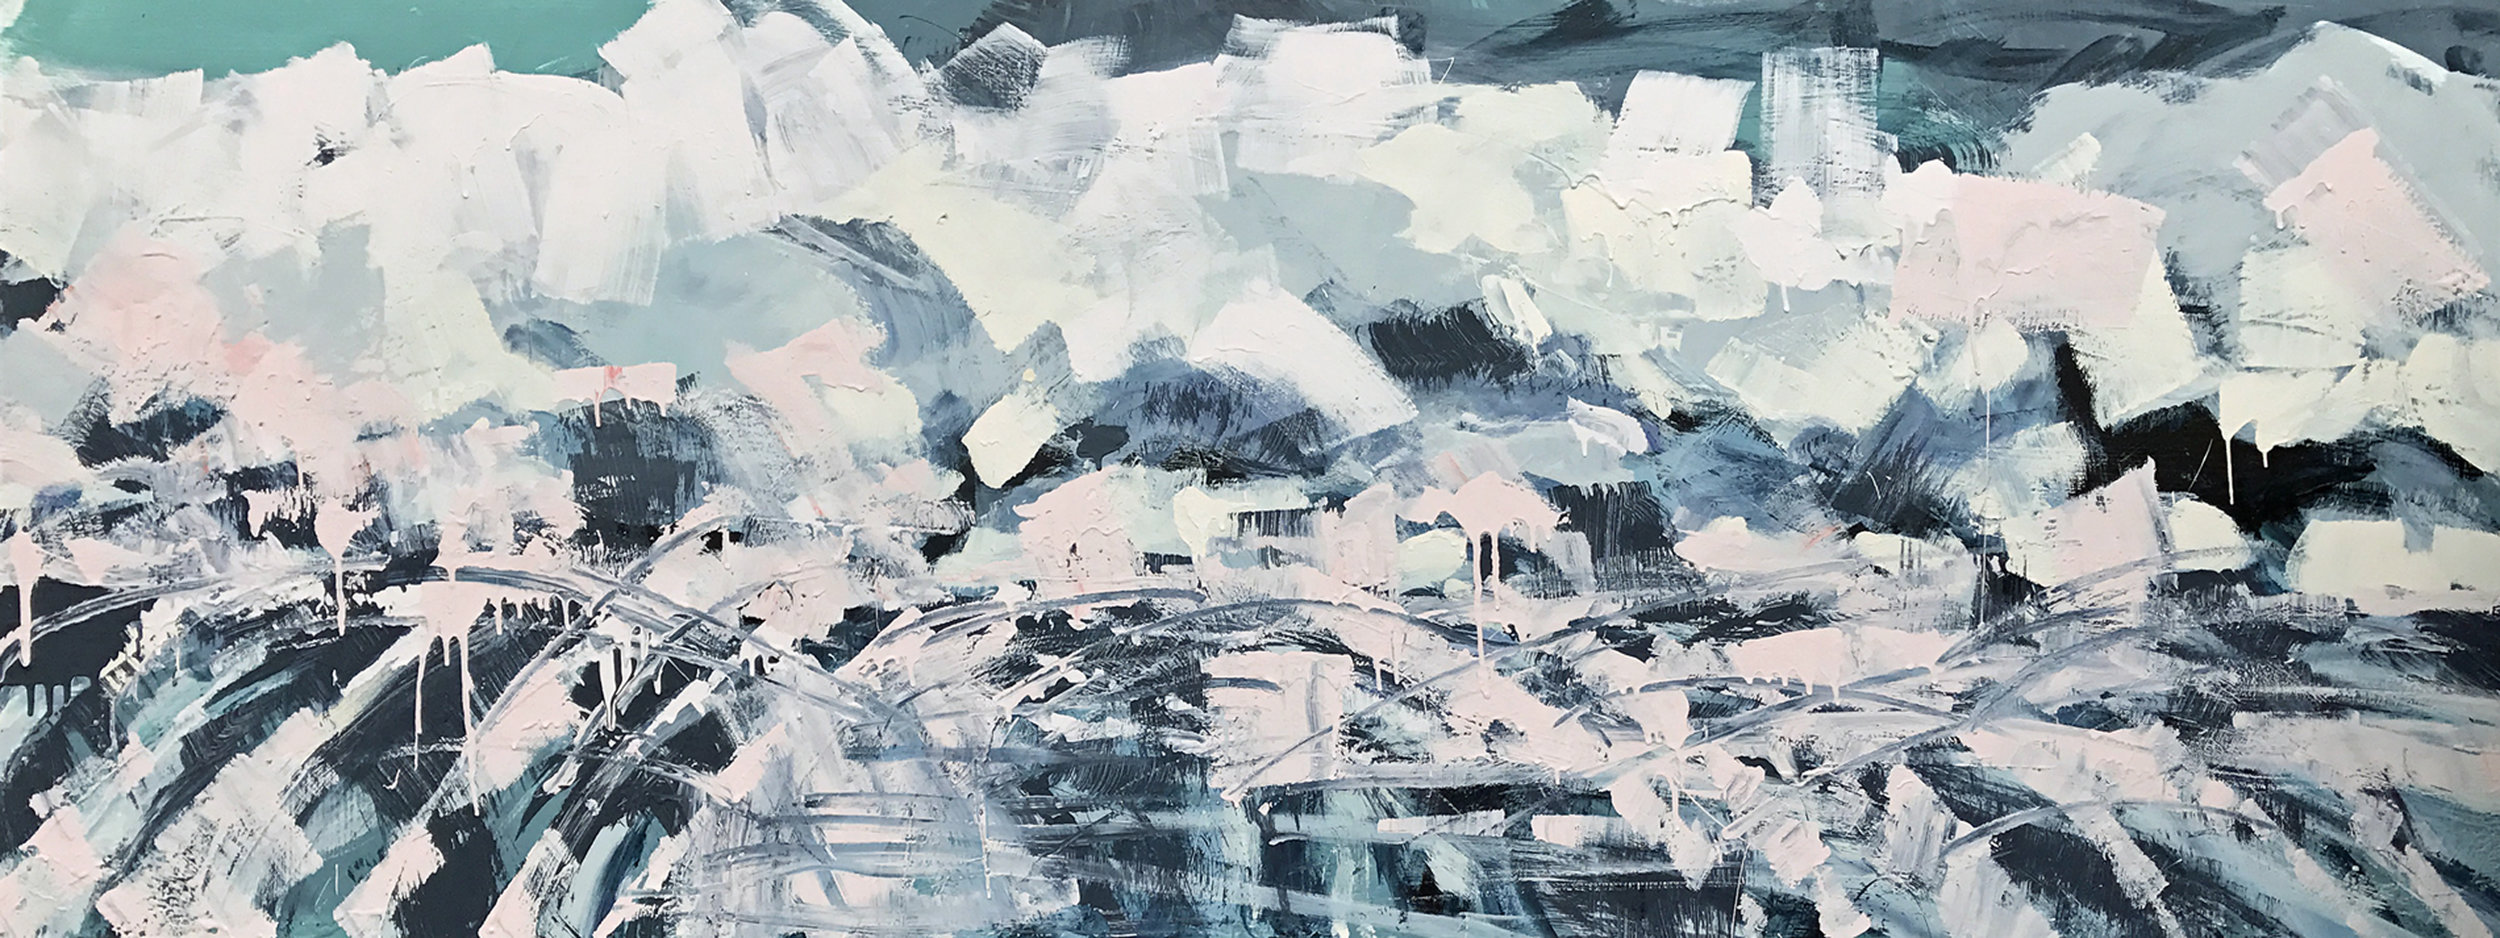 """Winter Is Coming   by Sally Veach  ,  Acrylic on Wood Panel, 30"""" X 80"""", on view at Muse Vineyards May 13-June 11, 2017."""